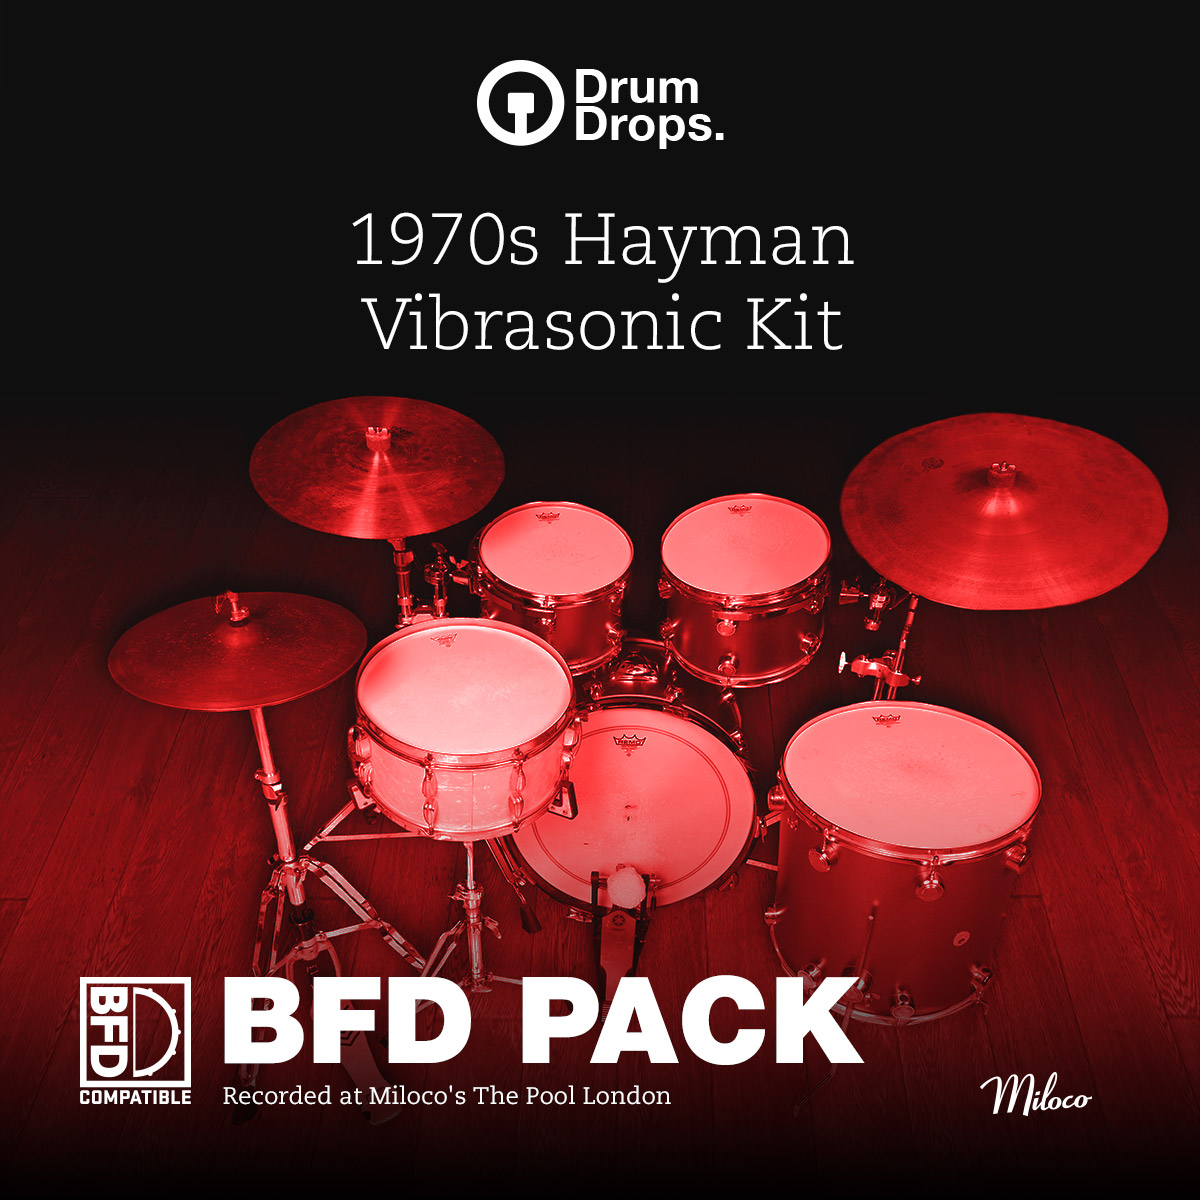 1970s Hayman Vibrasonic kit - BFD Pack